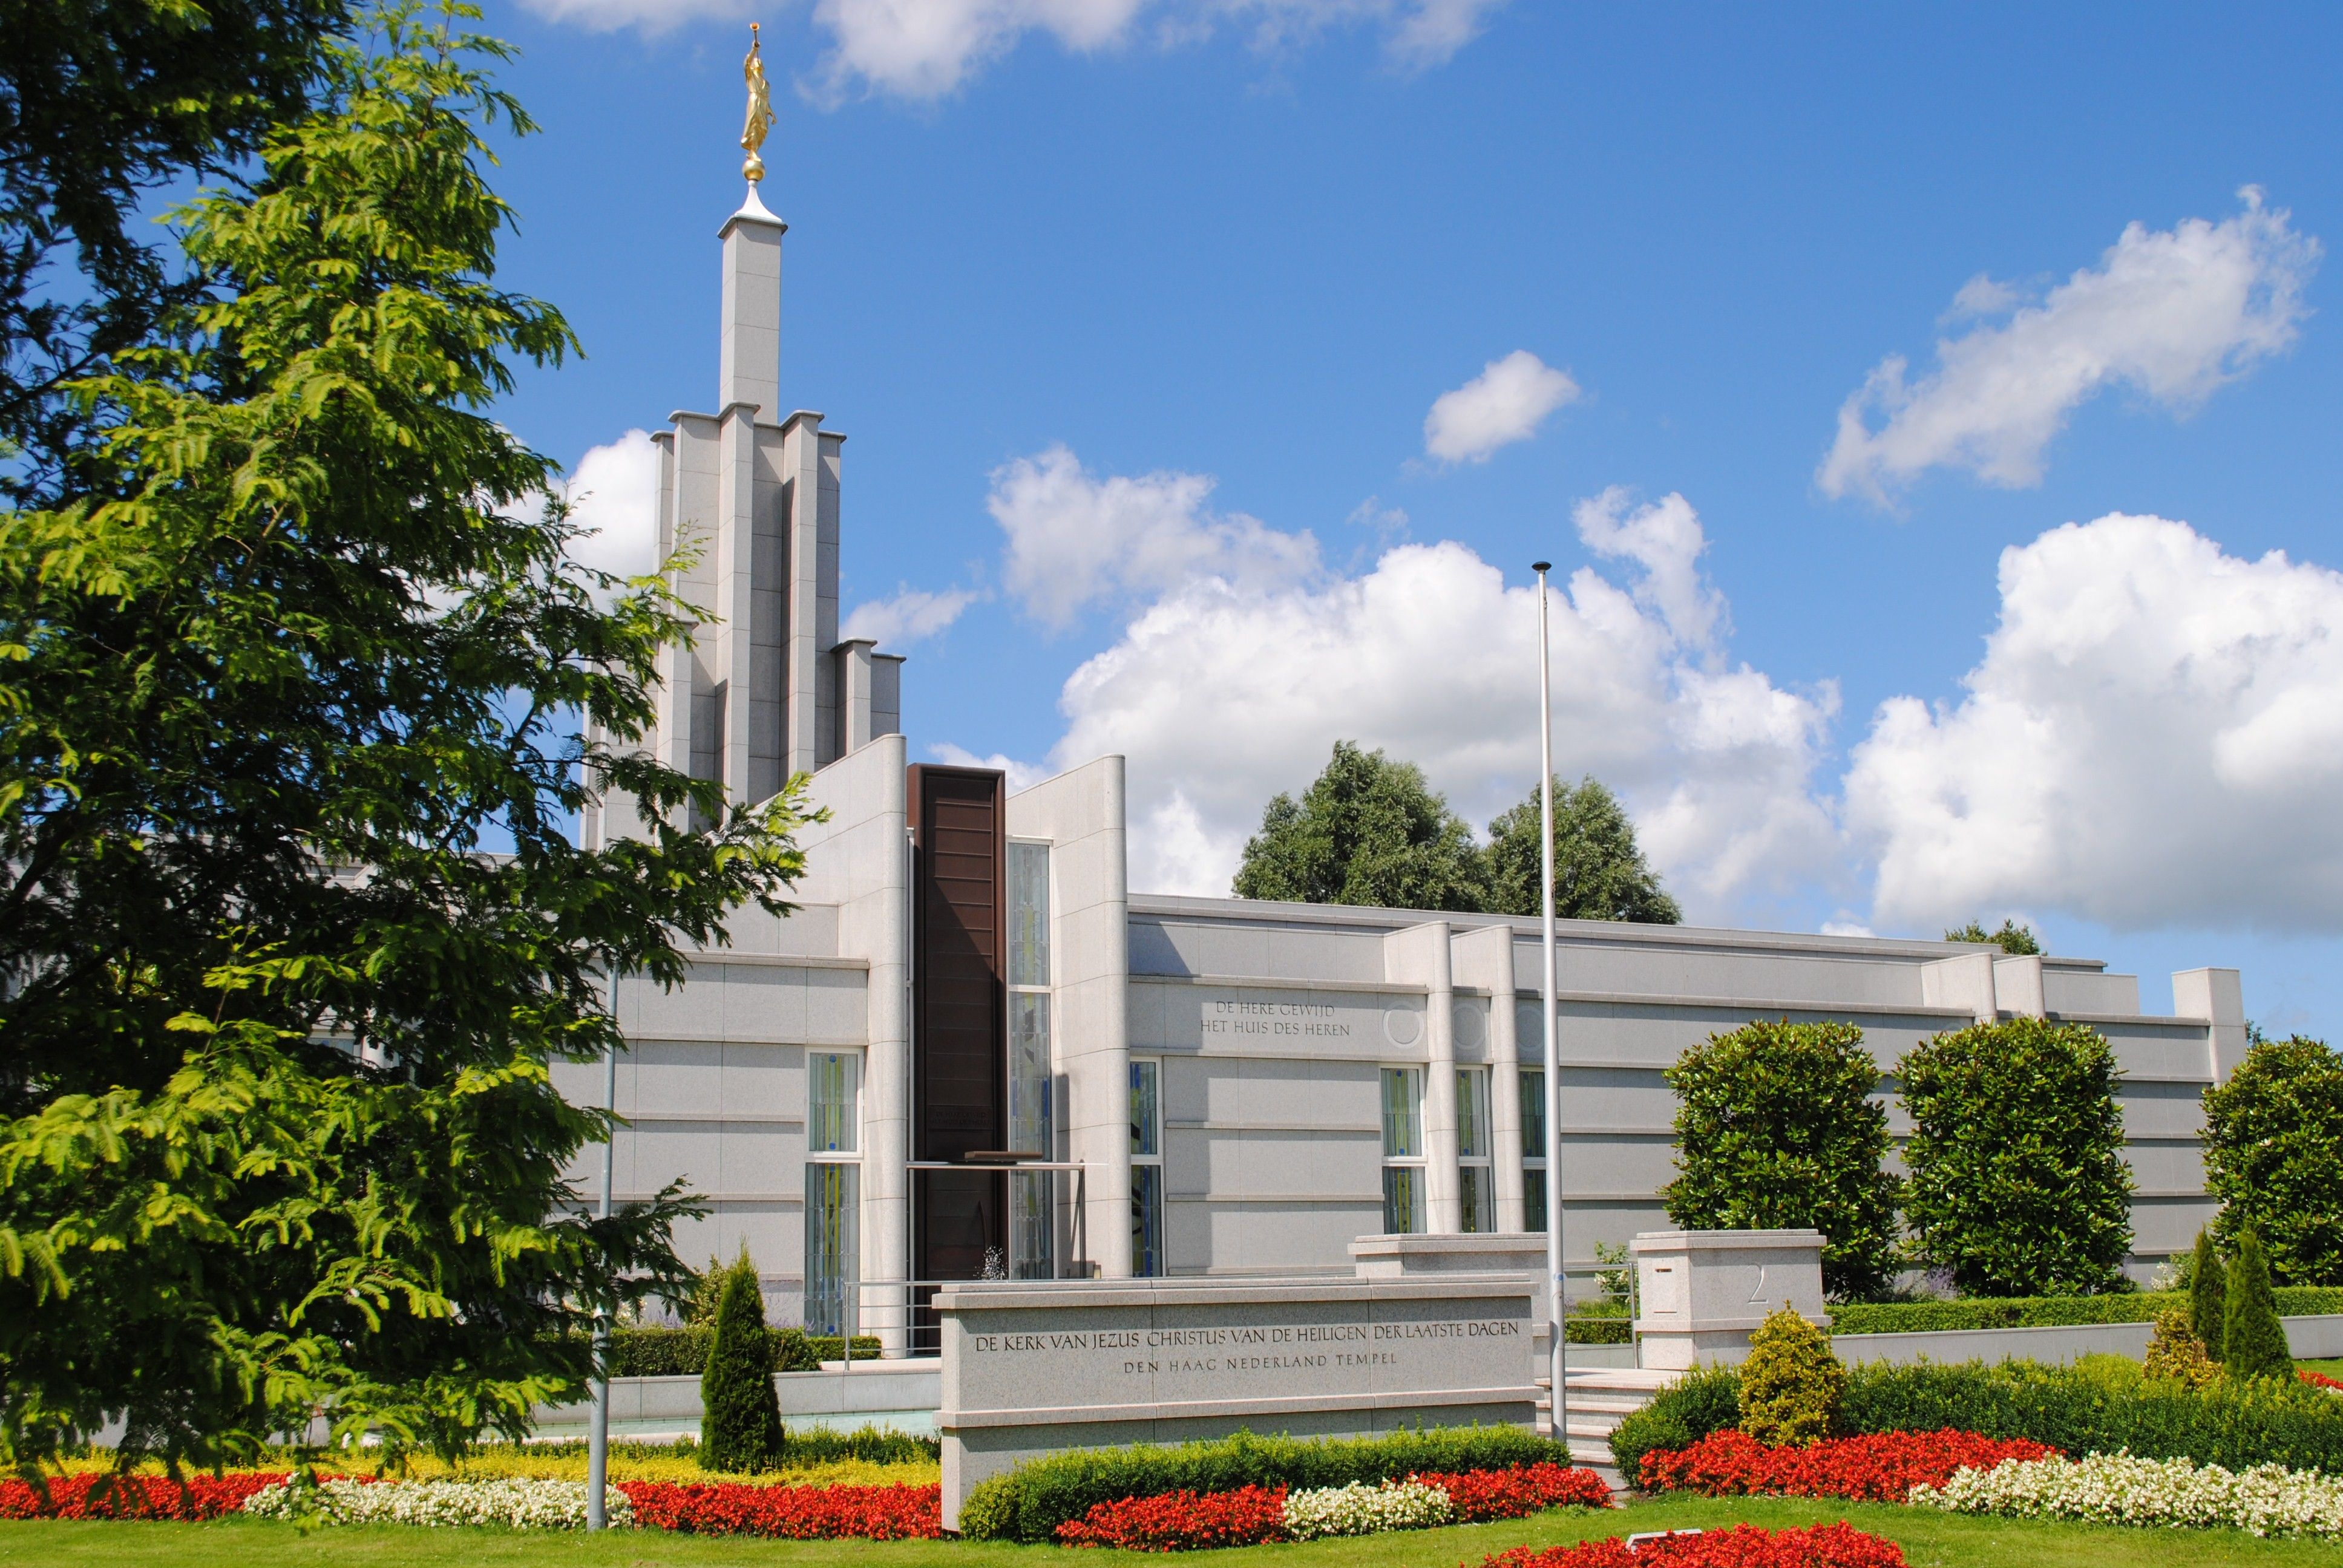 The Hague Netherlands Temple, with the name sign, scenery, and entrance.